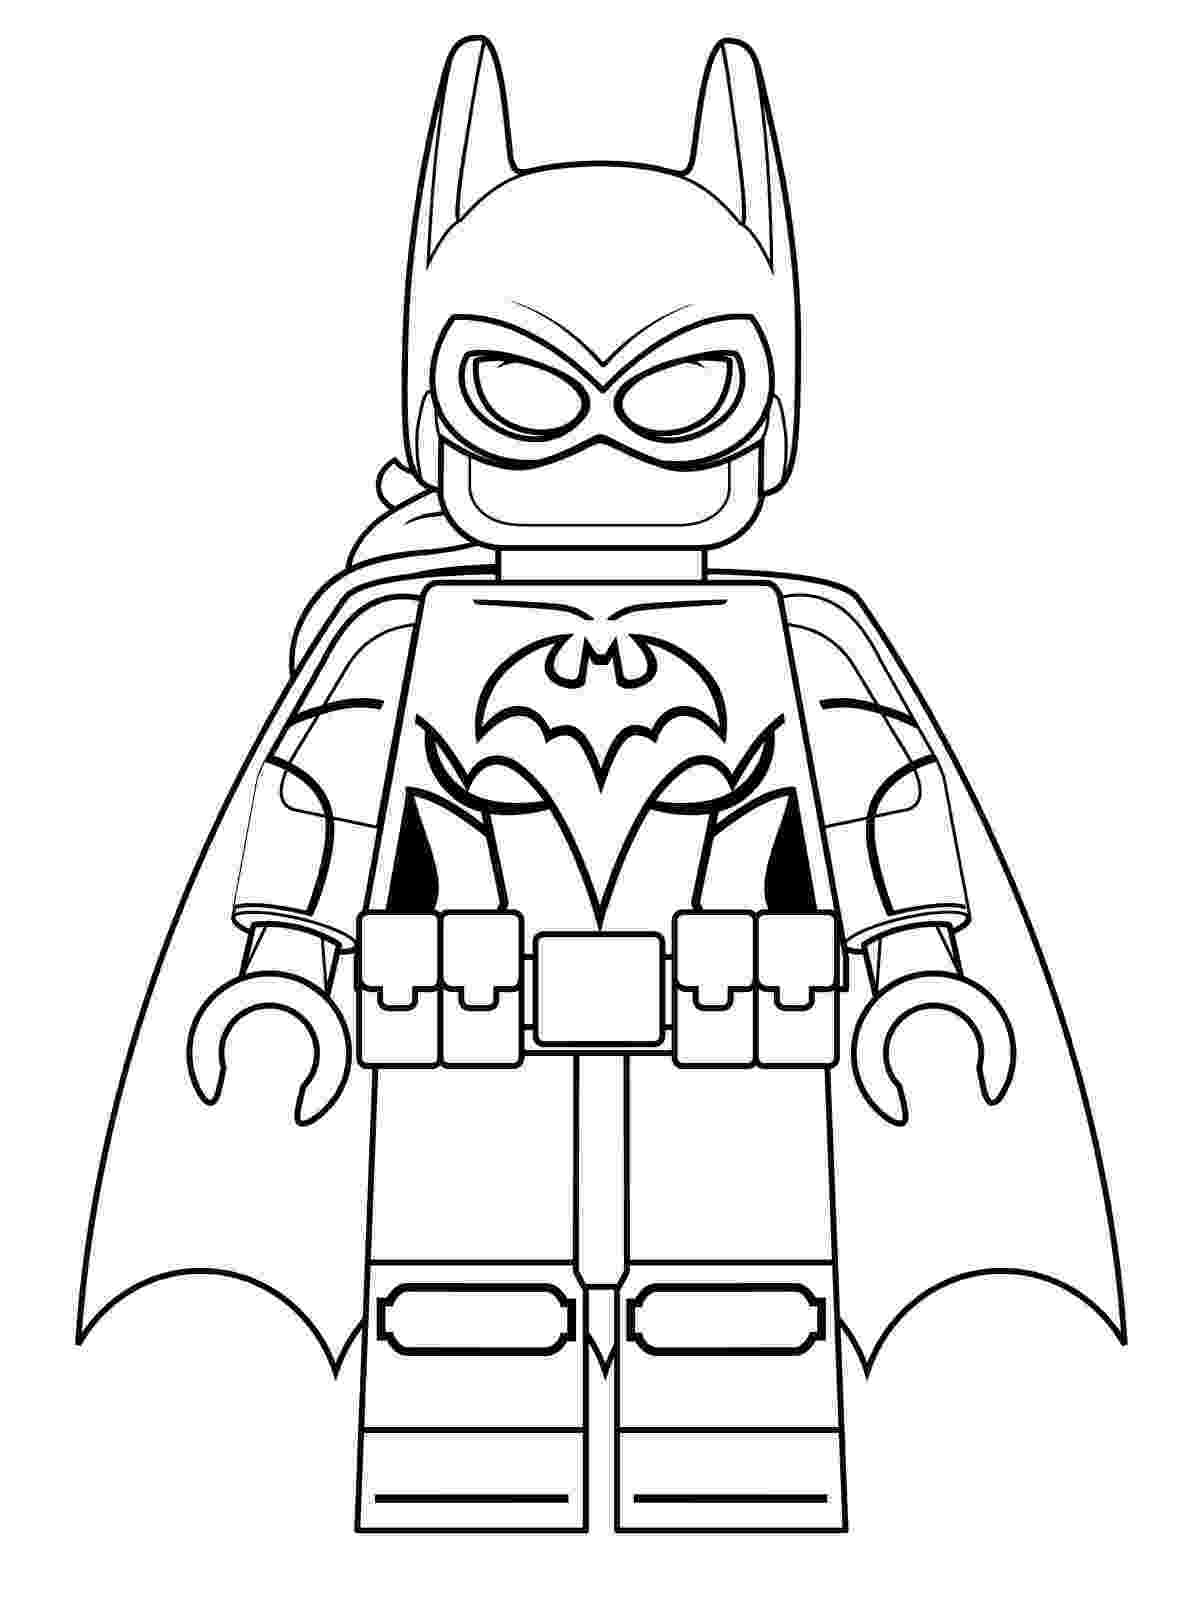 free lego printable coloring book free printable lego coloring pages for kids cool2bkids book free coloring printable lego